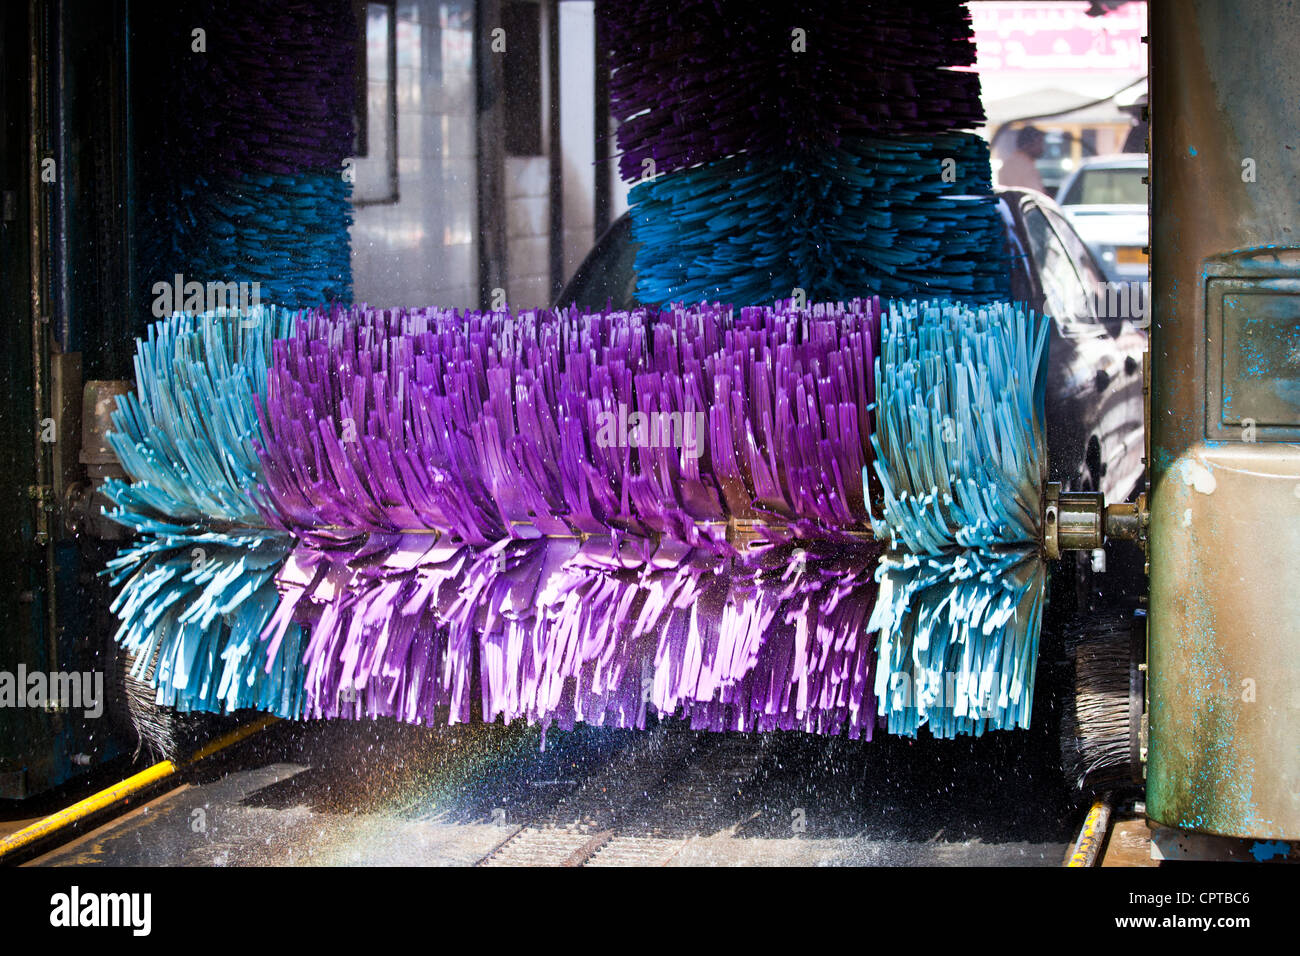 cars in a car-wash - Stock Image